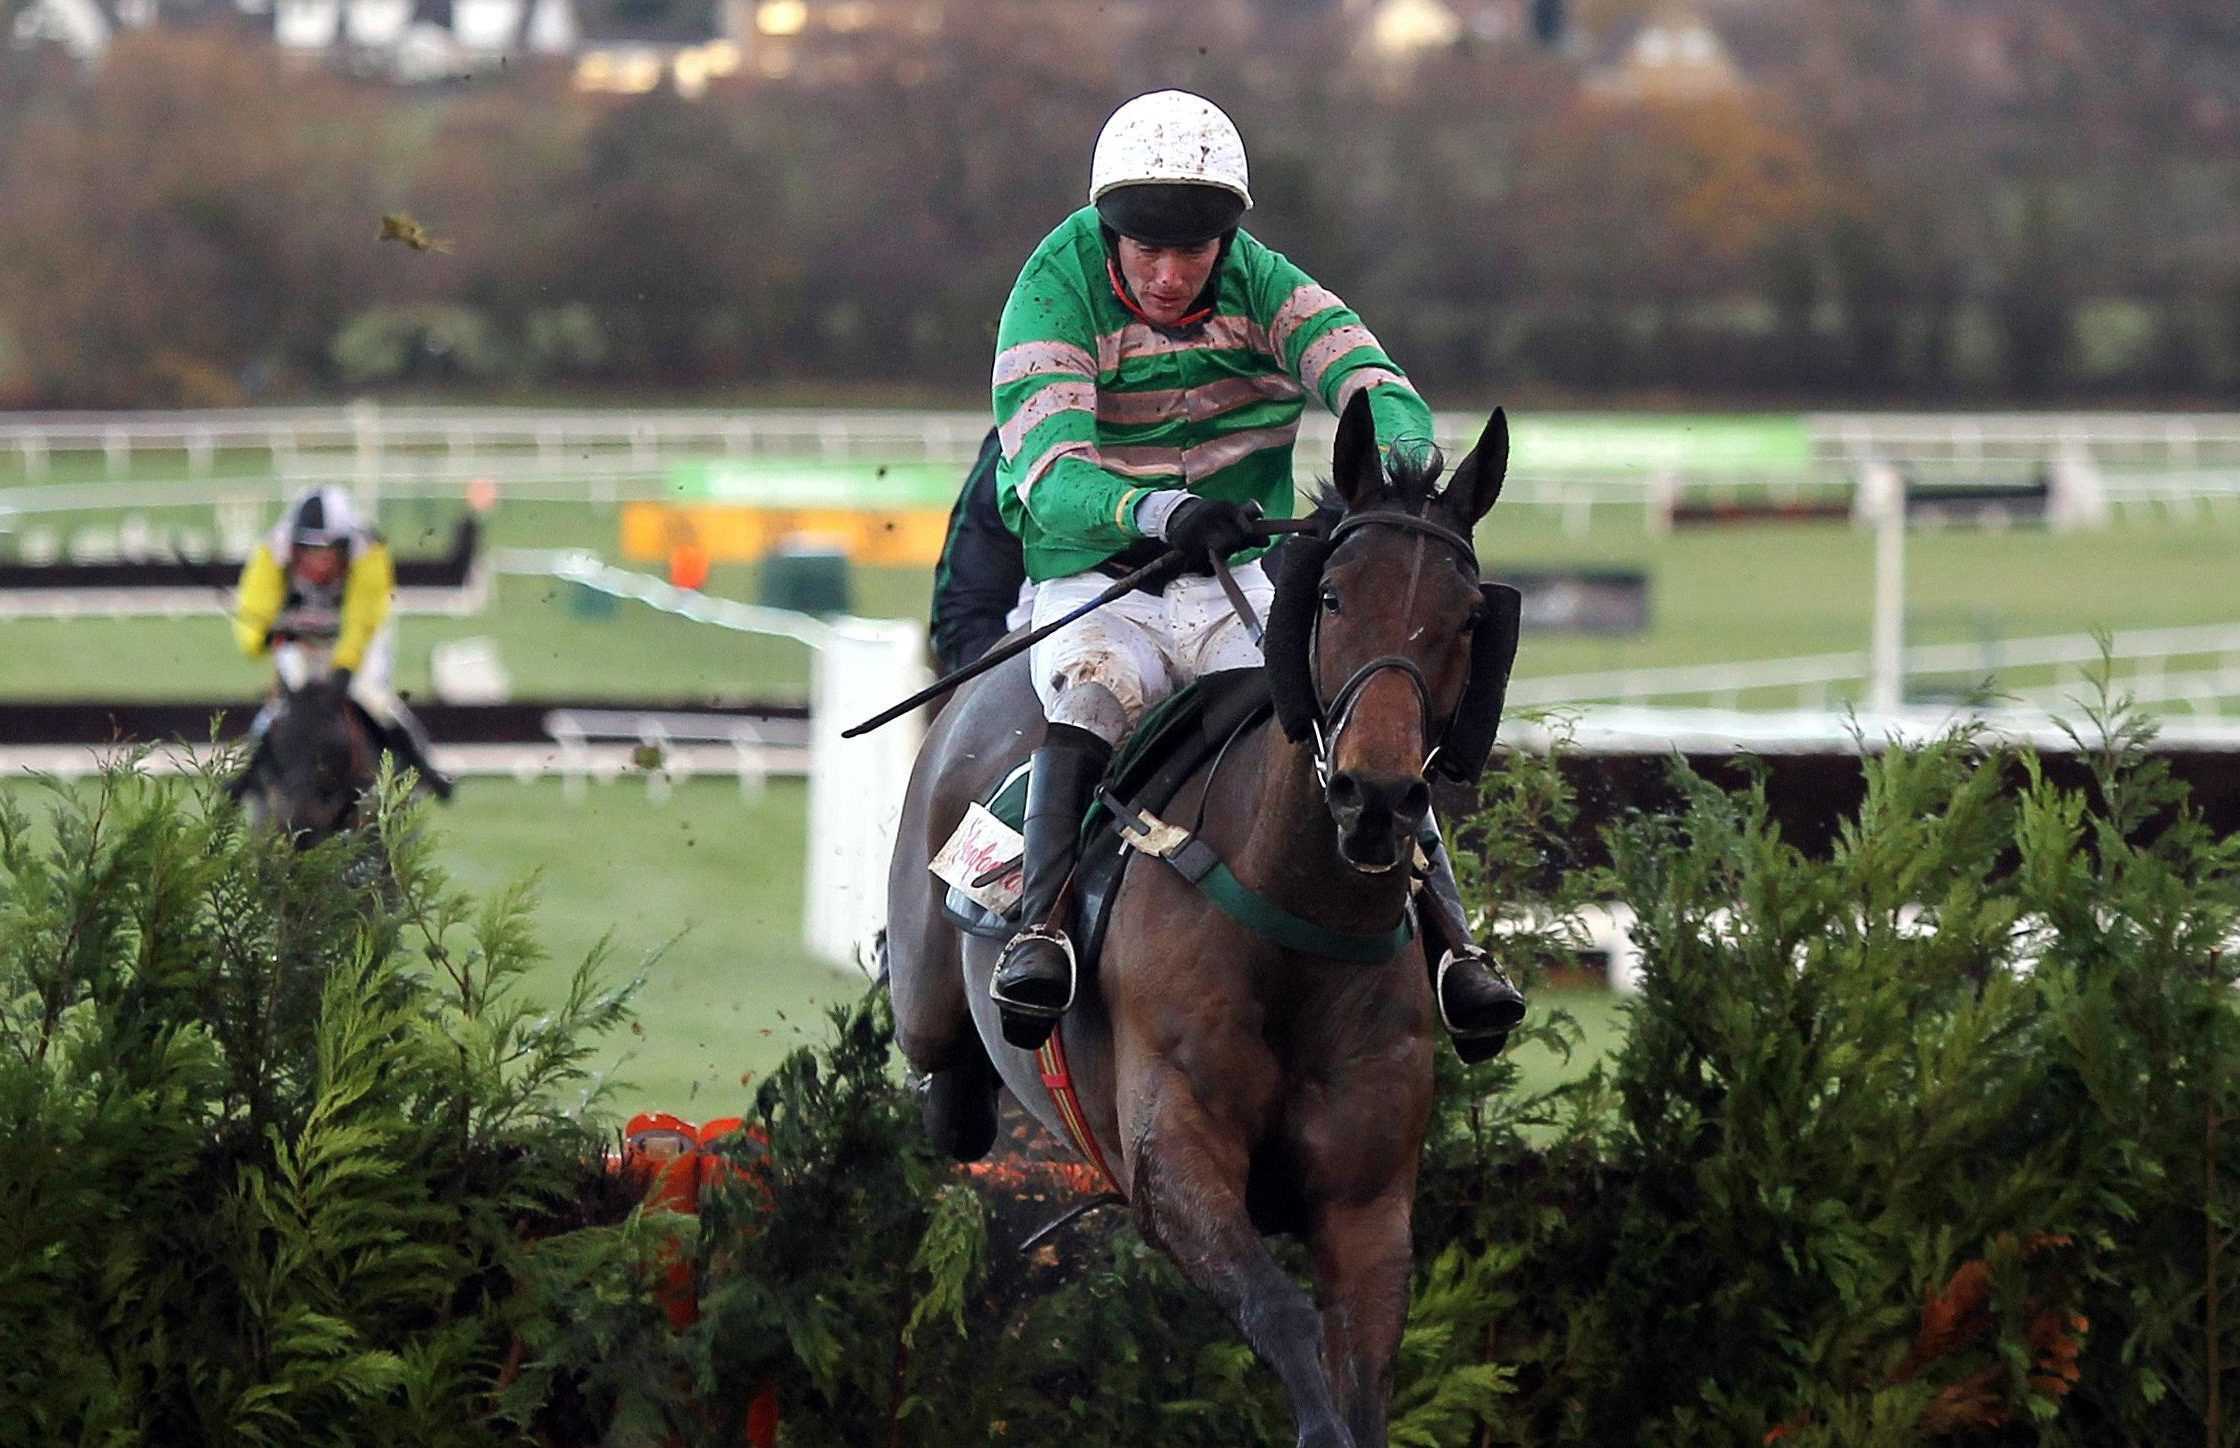 JT McNamara on Garde Champetre at Cheltenham Racecourse in 2011.